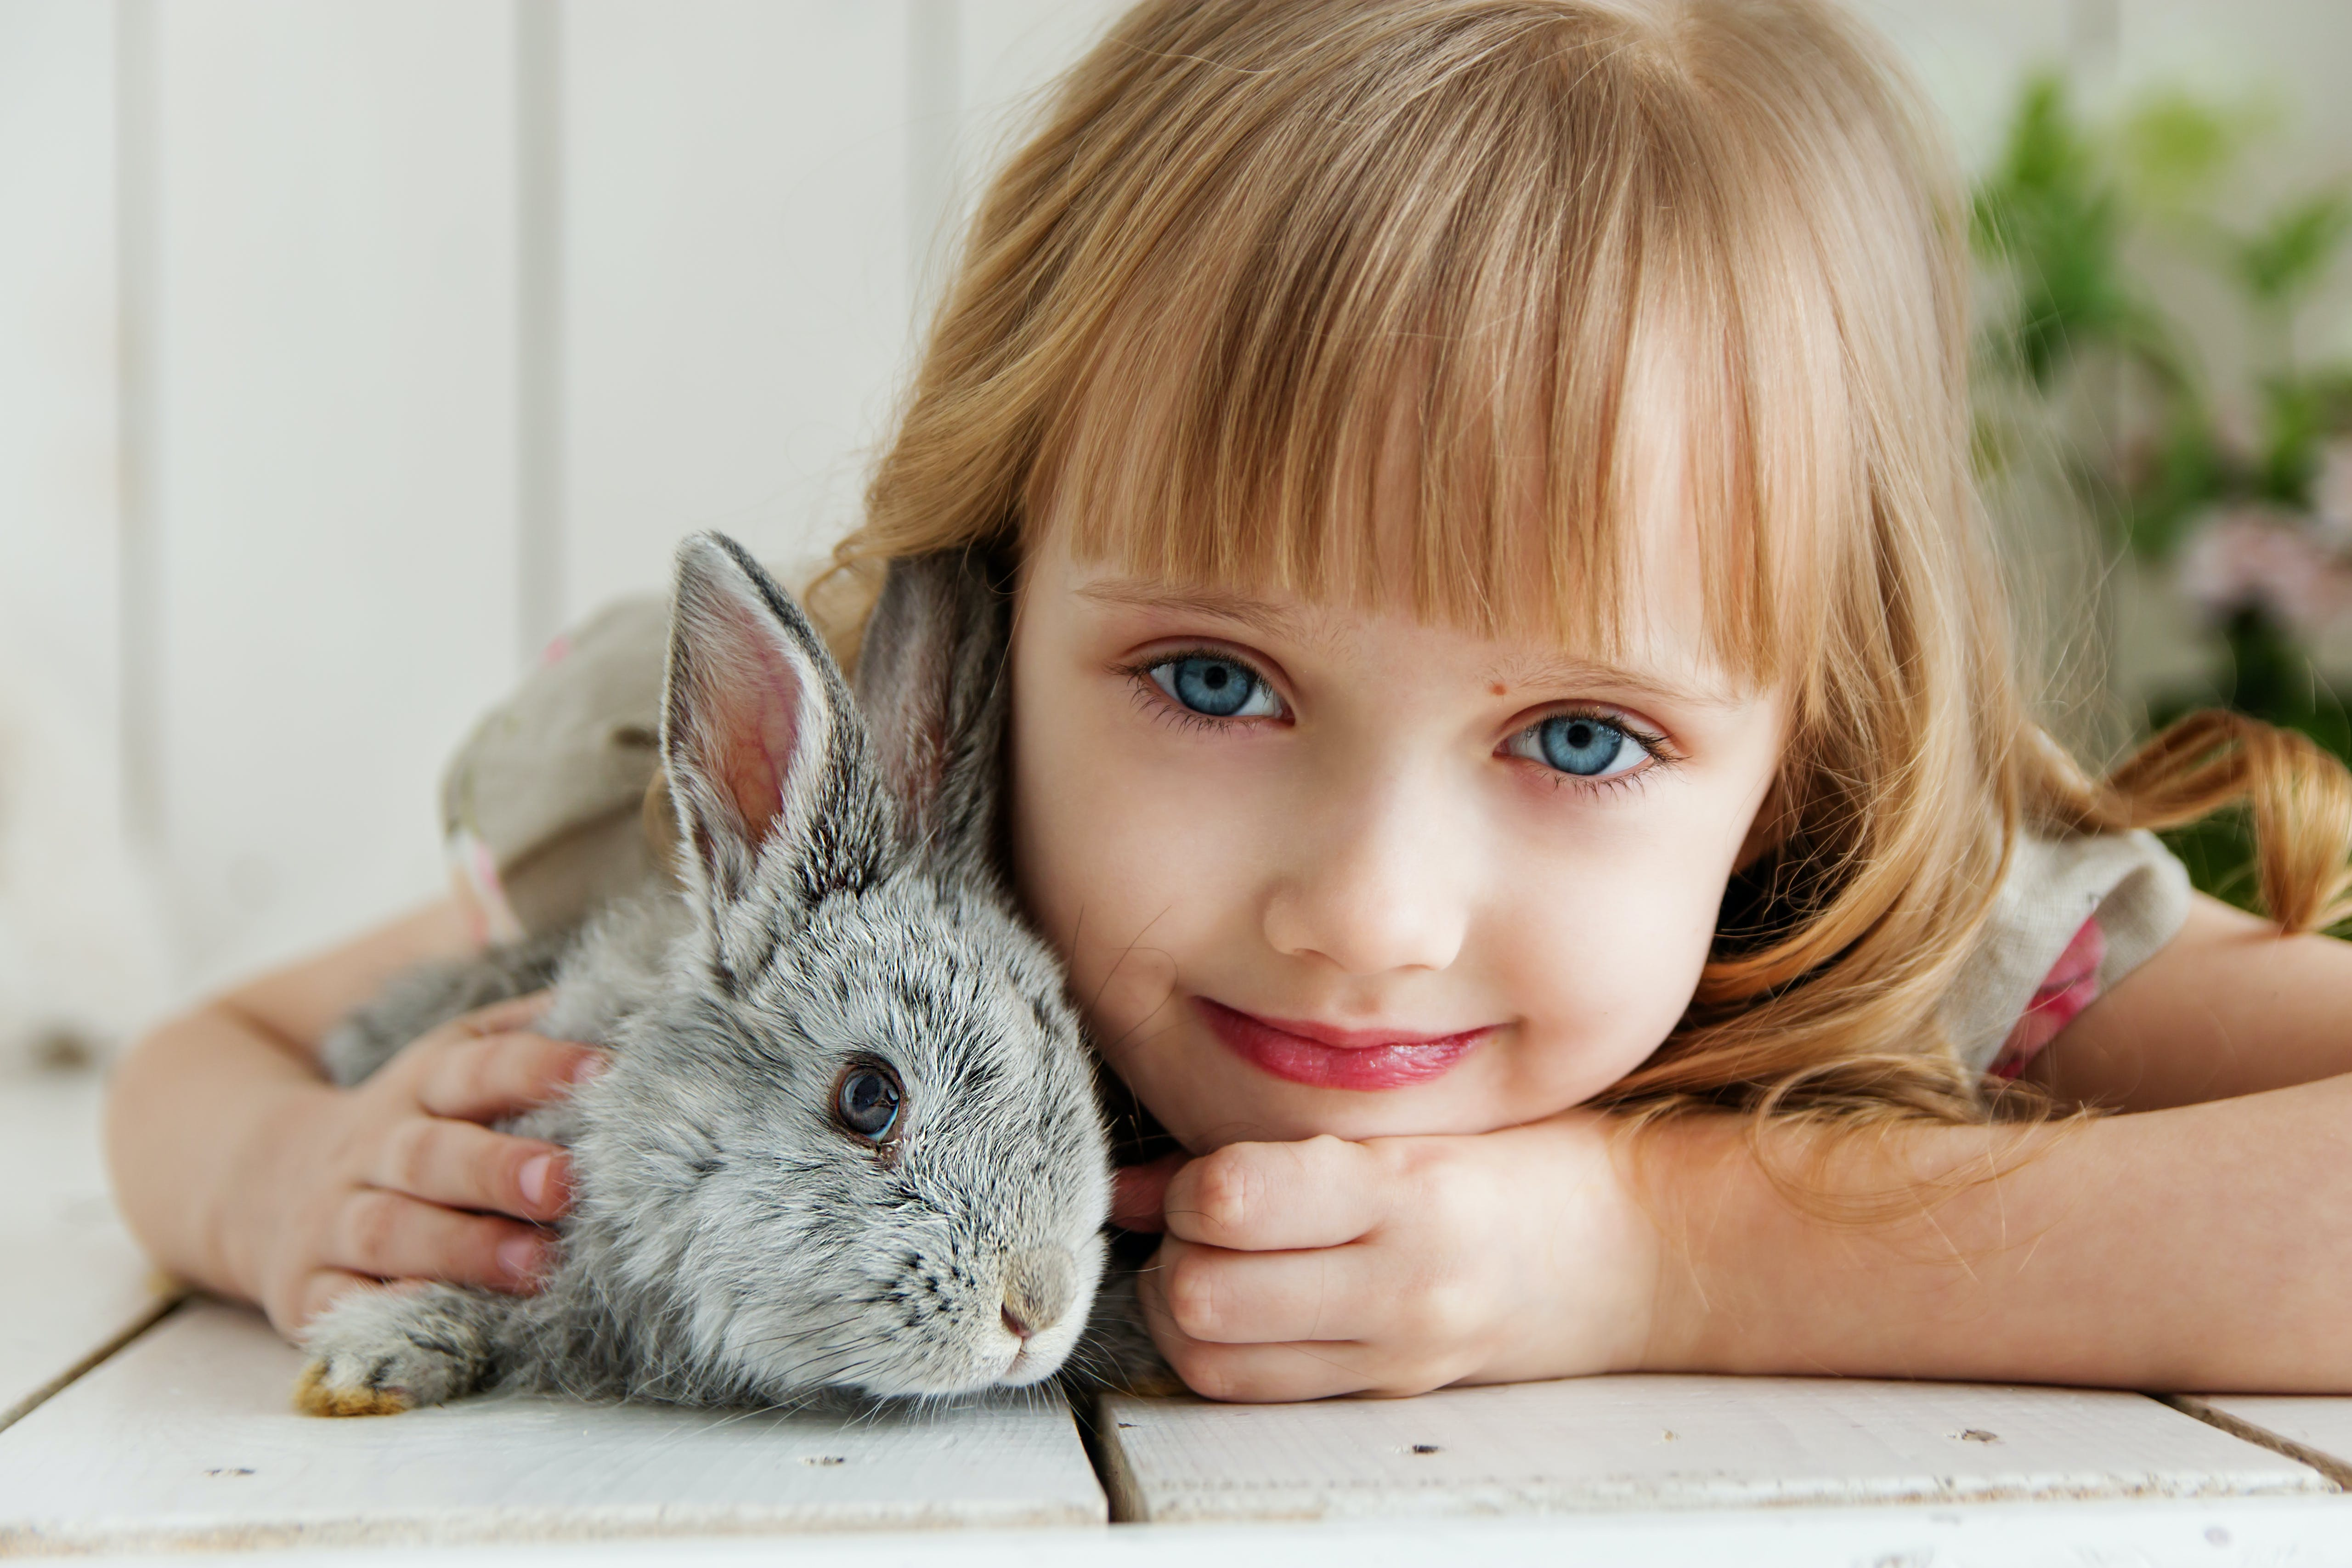 Girl Lying on White Surface Petting Gray Rabbit